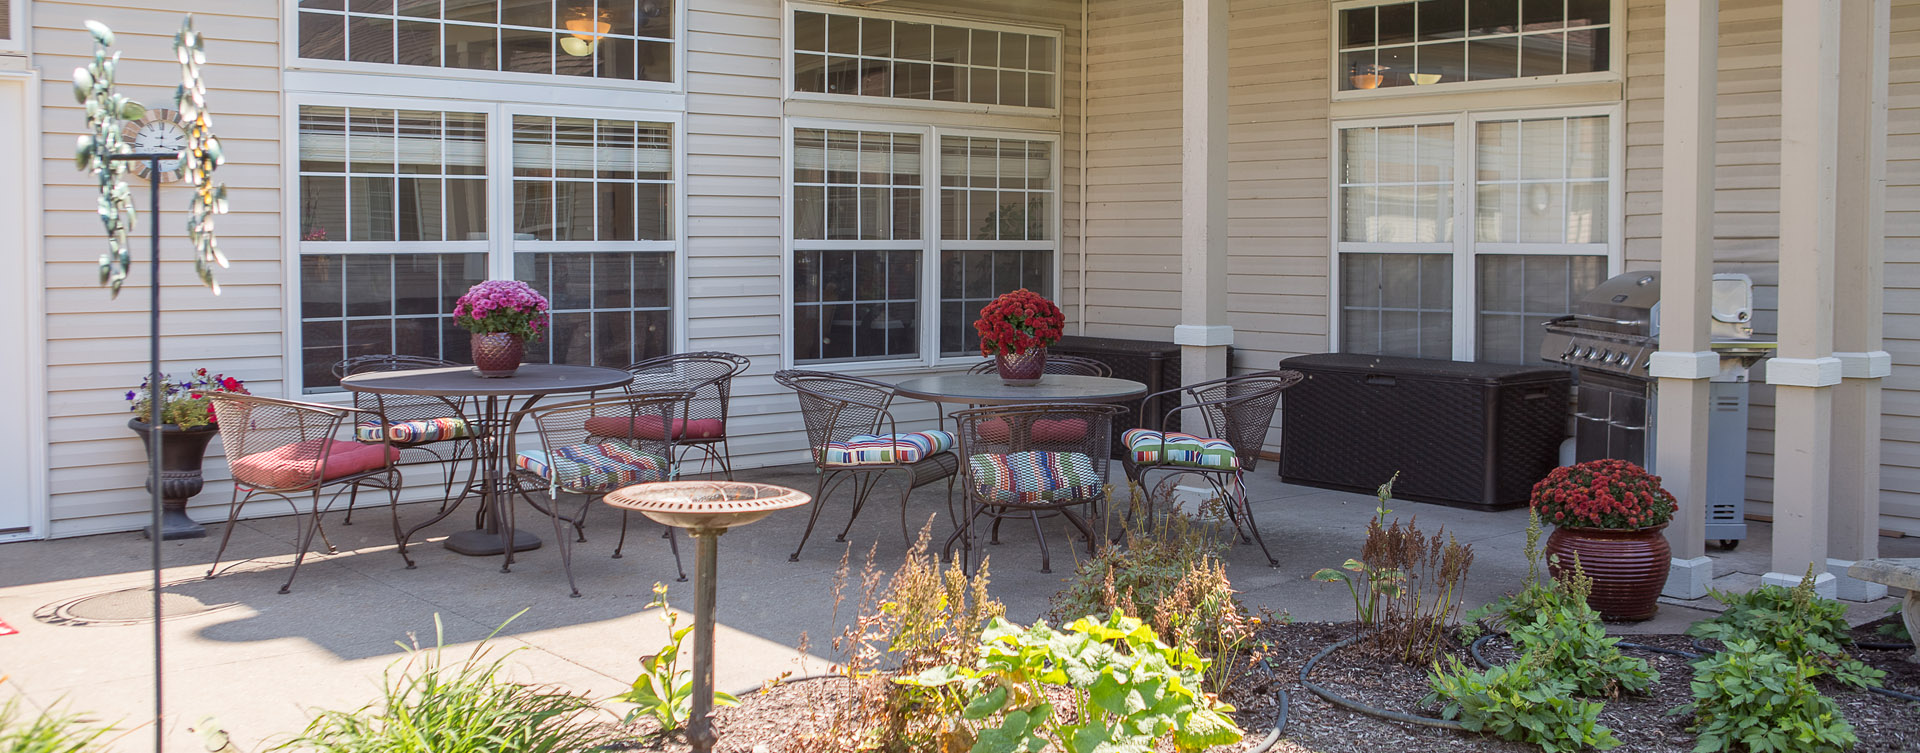 Enjoy bird watching, gardening and barbecuing in our courtyard at Bickford of Davenport